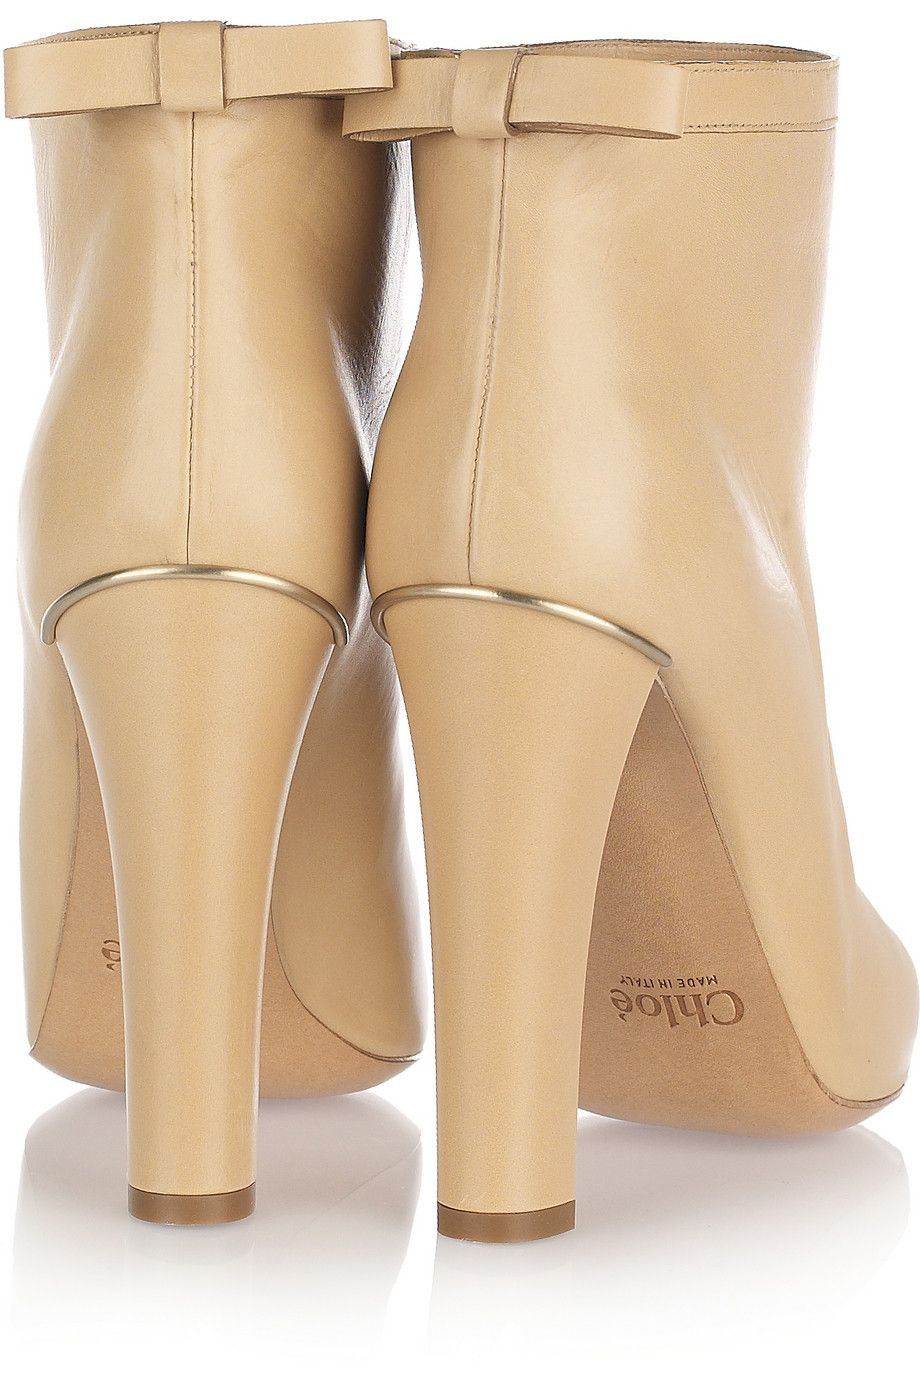 Chloé|Bow-embellished leather ankle boots|NET-A-PORTER.COM #Chloe'